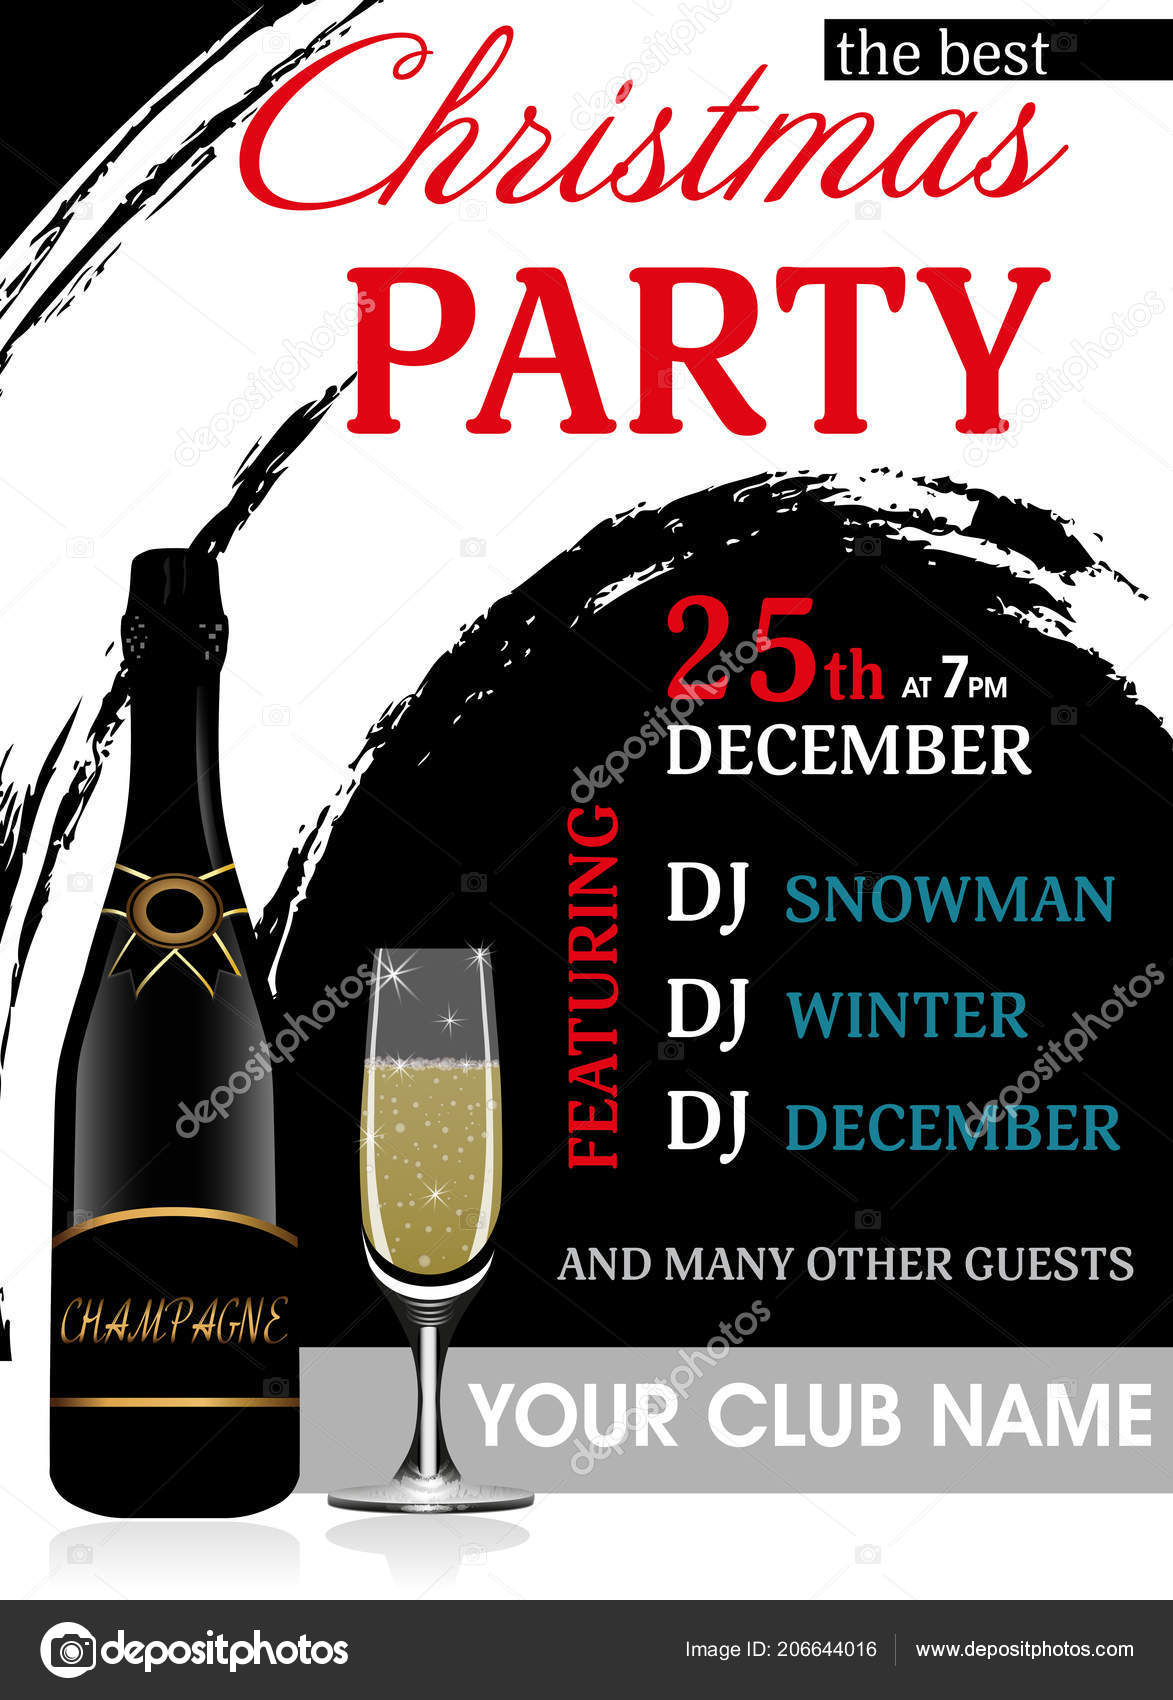 christmas party invitation vertical template champagne bottle wineglass new year stock vector